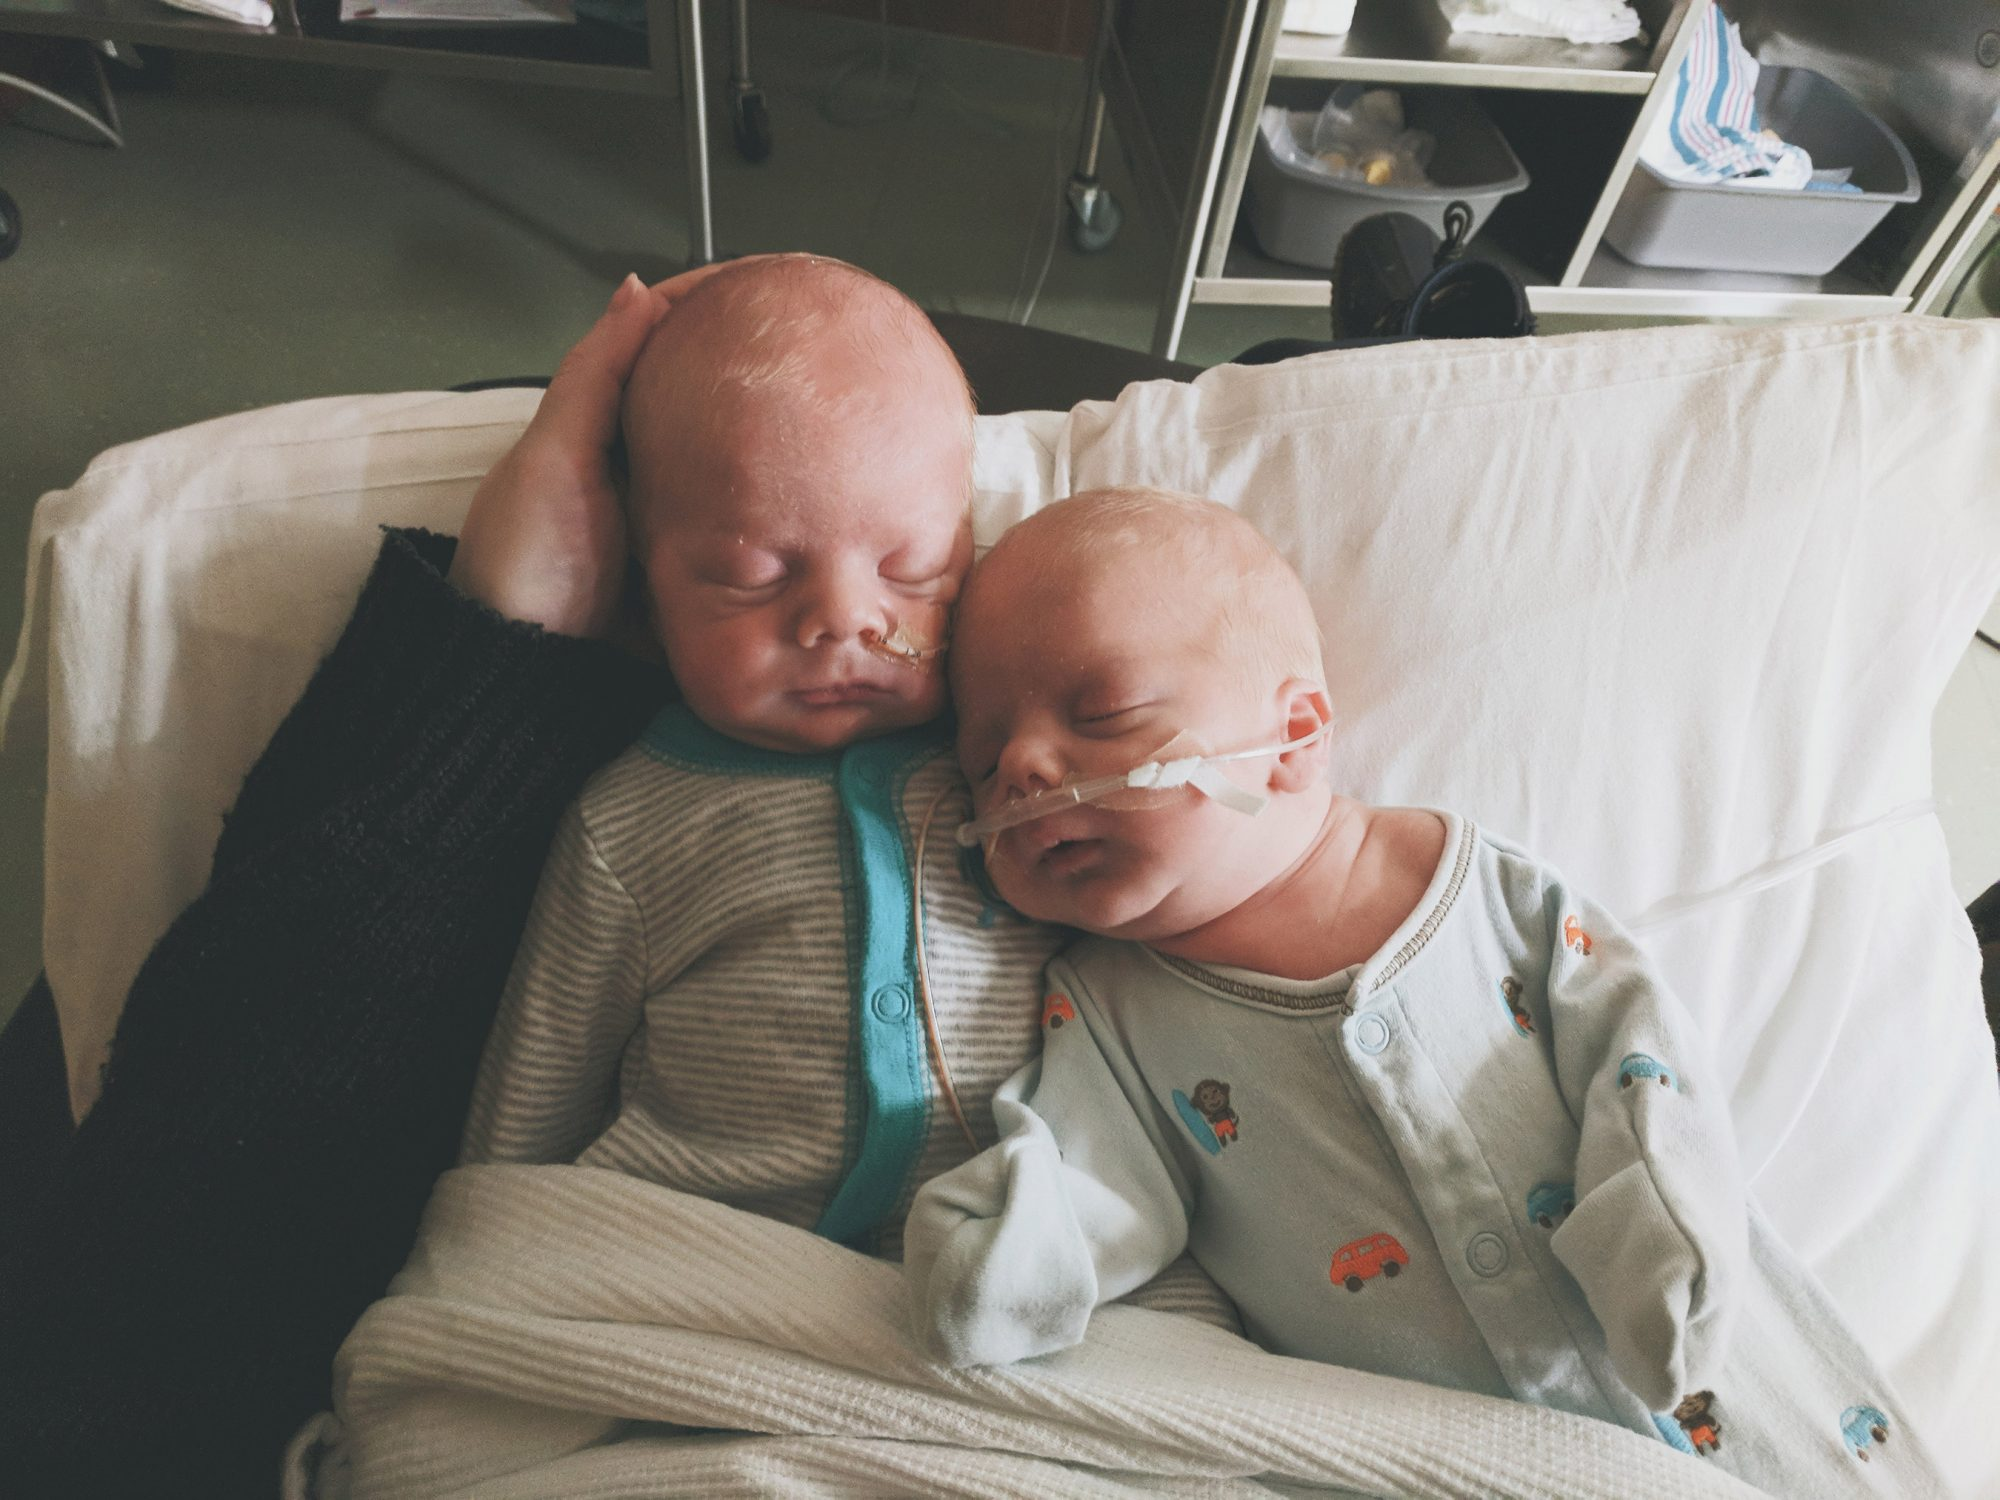 Argon and Aldridge. See SWNS story SWNYsun; A set of parents moved their family-of-nine almost 3000 miles to protect their albino toddlers from the sun's damaging UV rays. Ally and Ryan McNallen decided to move their seven children from the desert to the mountains to help give their identical twin sons Aldridge and Argon, 18 months, a better quality of life. The white-haired, fair-skinned twins were diagnosed with albinism in summer 2018, a condition in which their skin, hair and eyes lack melanin pigment.